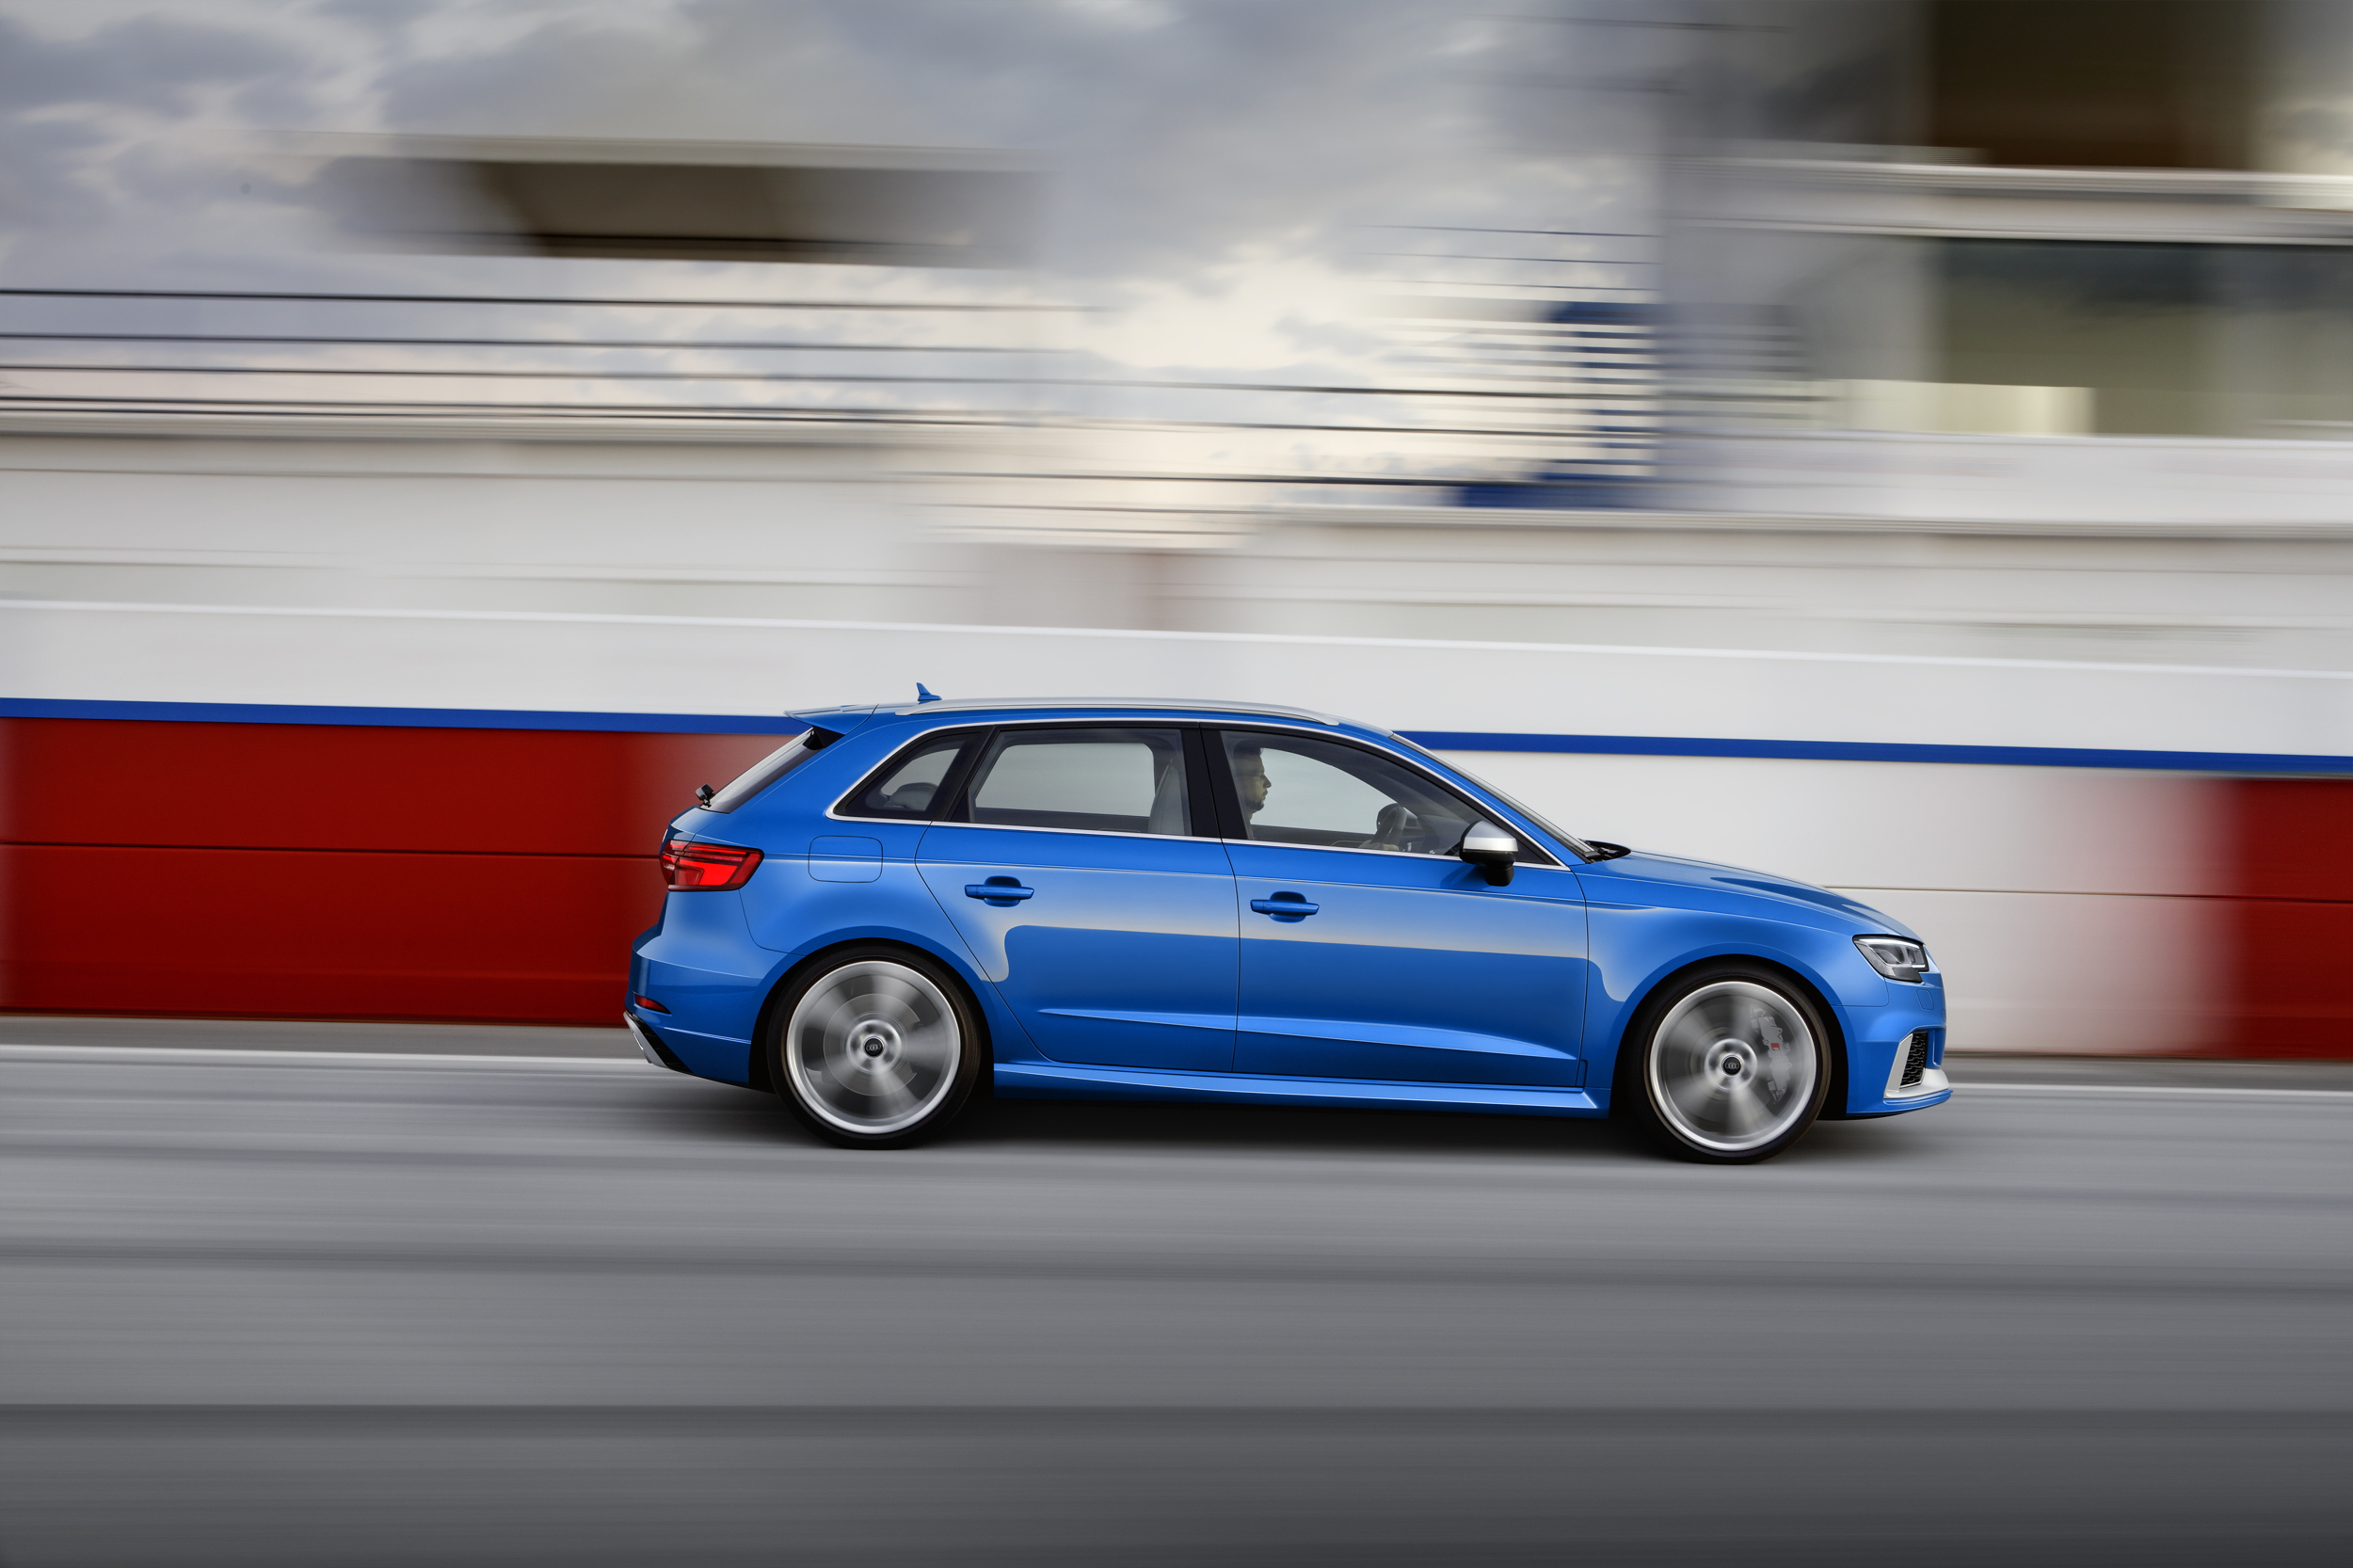 2017 Audi RS3 Sportback at speed